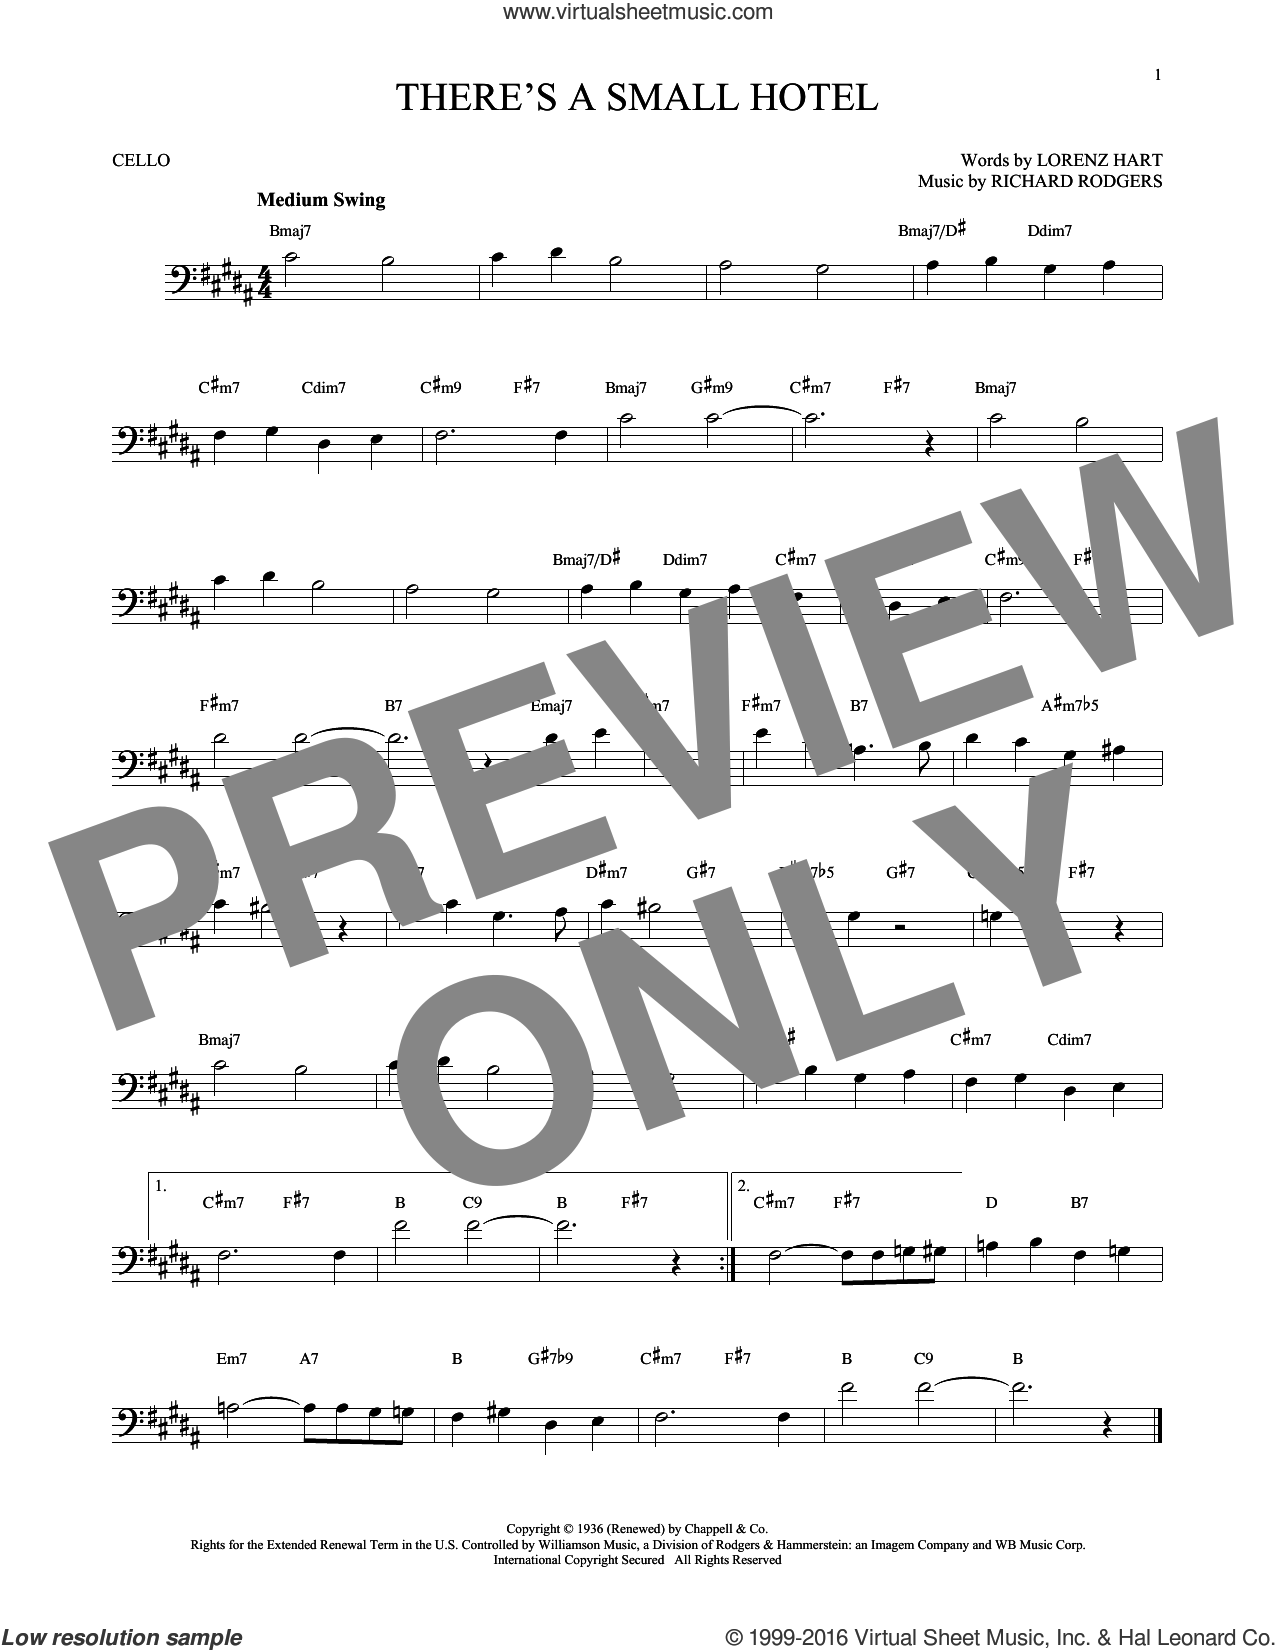 There's A Small Hotel sheet music for cello solo by Rodgers & Hart, Charlie Byrd, Ruby Braff, Sammy Davis, Jr., Lorenz Hart and Richard Rodgers, intermediate skill level